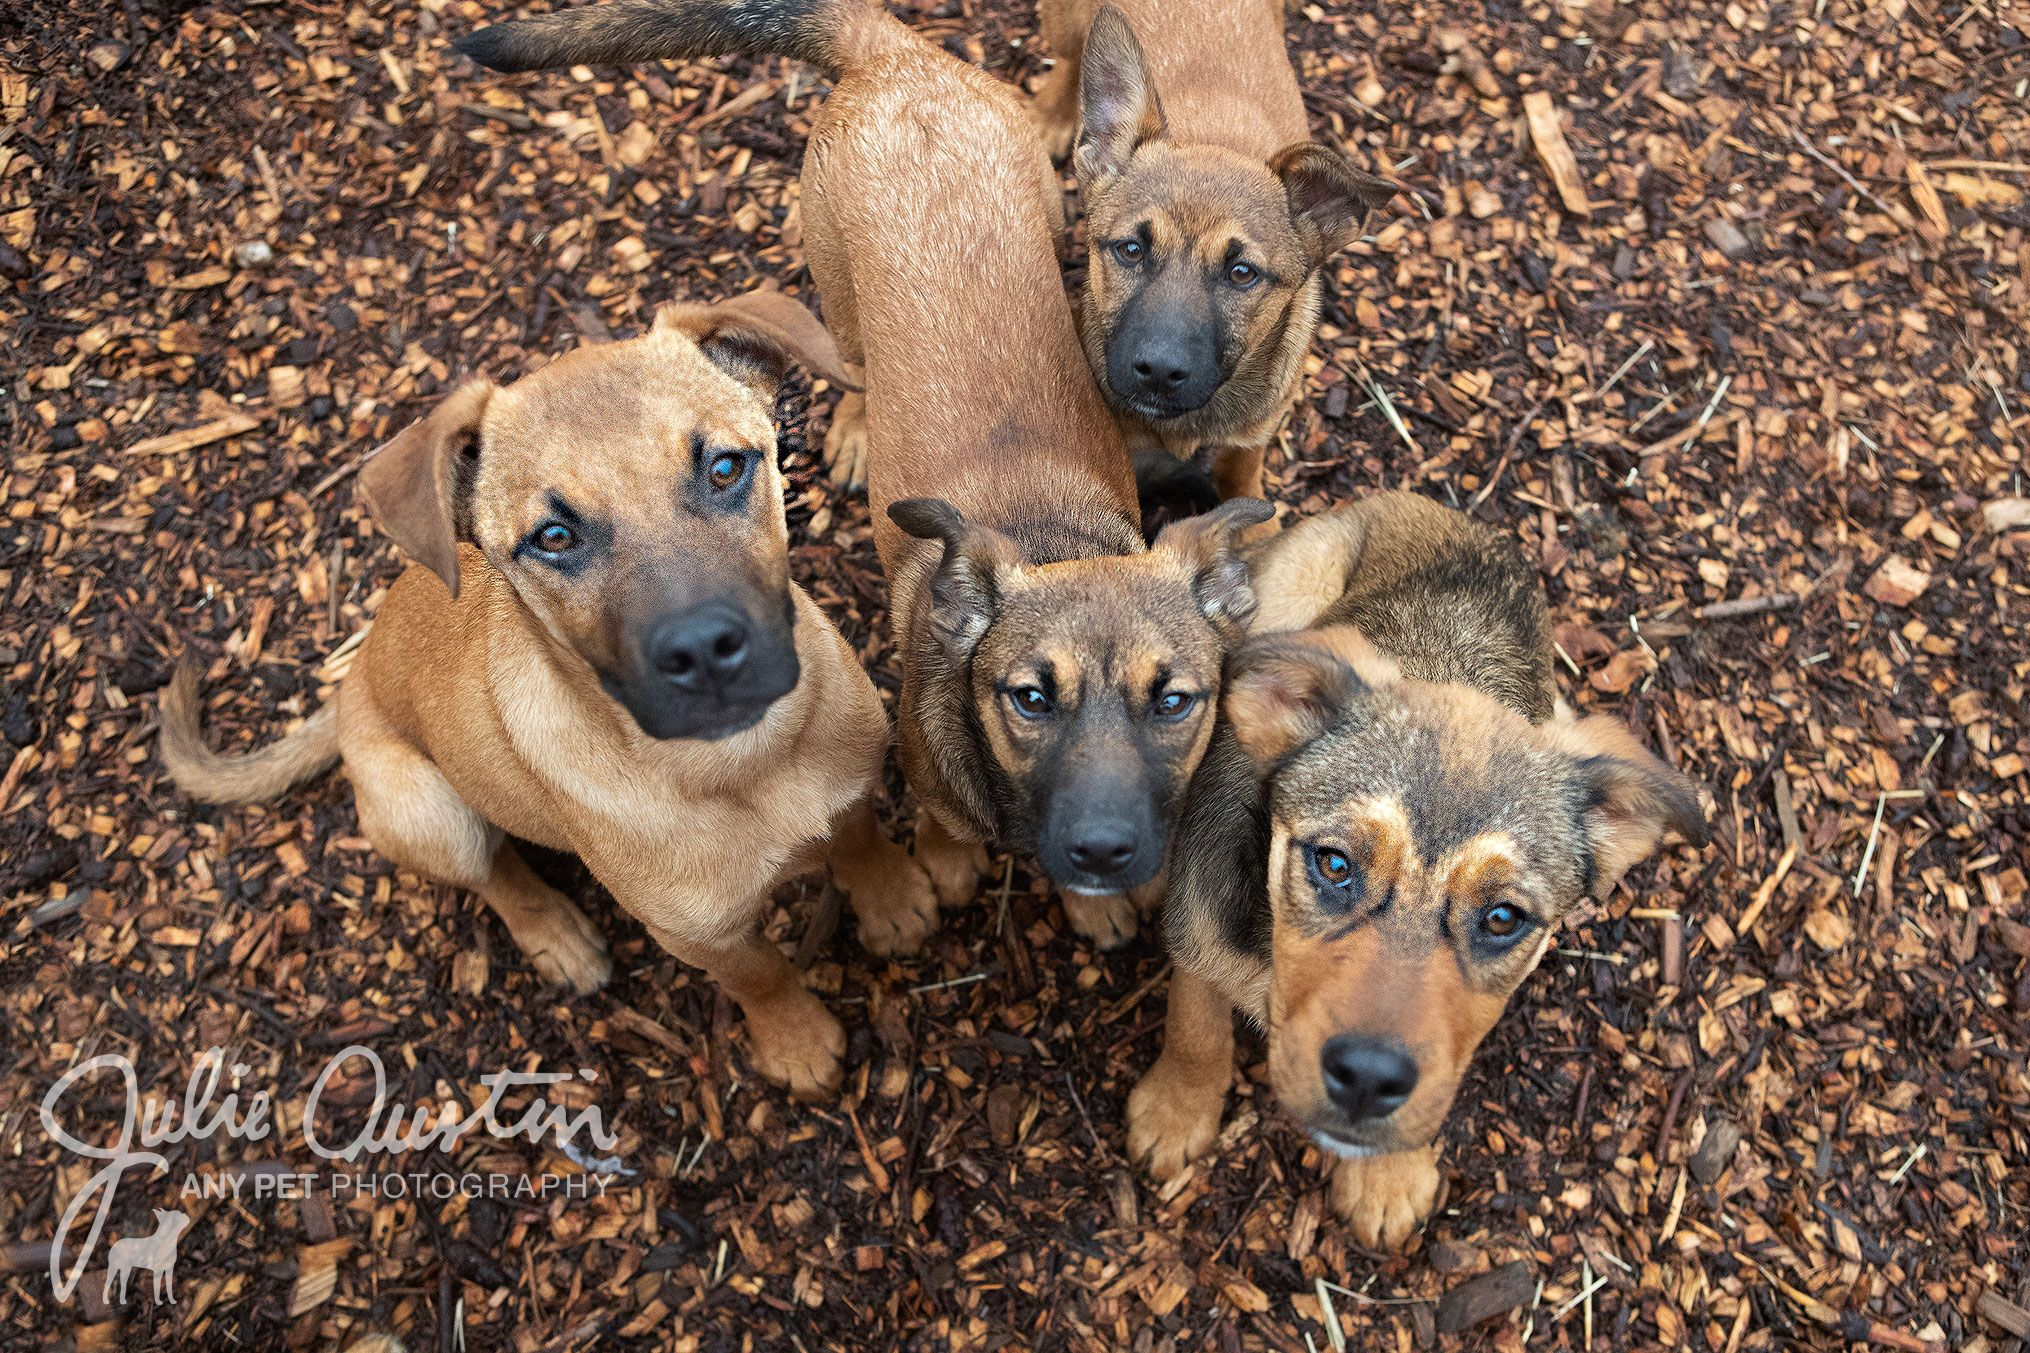 Here are four of the amazing dogs I photographed today at